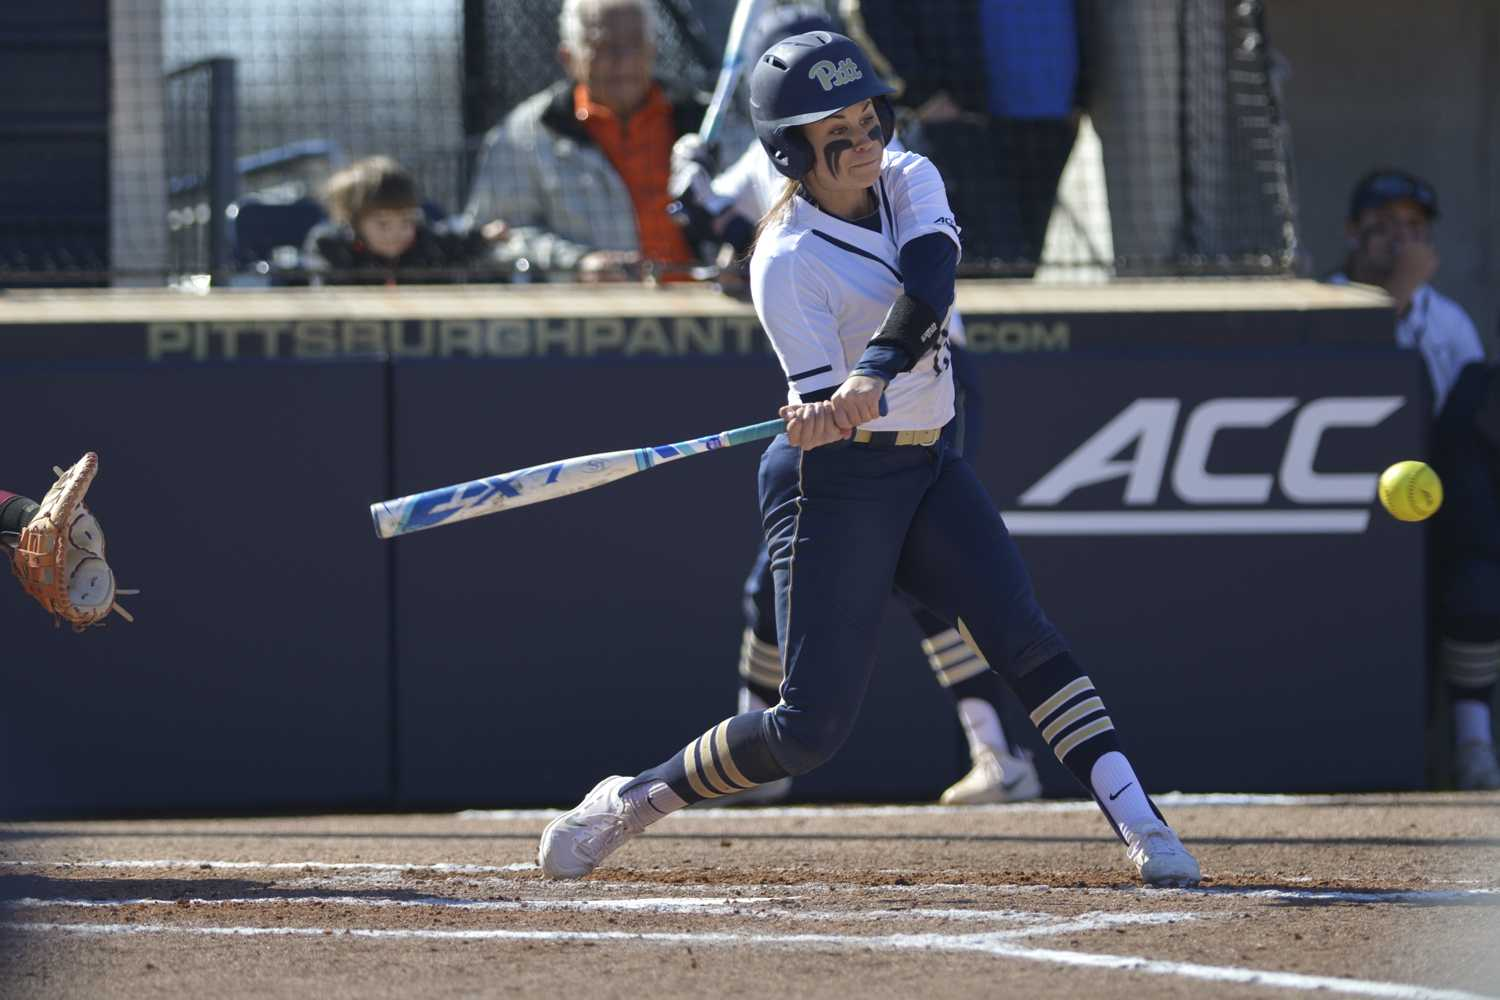 Senior third baseman McKayla Taylor (15) scored the first run during Pitt's 6-4 victory over Kent State. (Photo by John Hamilton | Managing Editor)